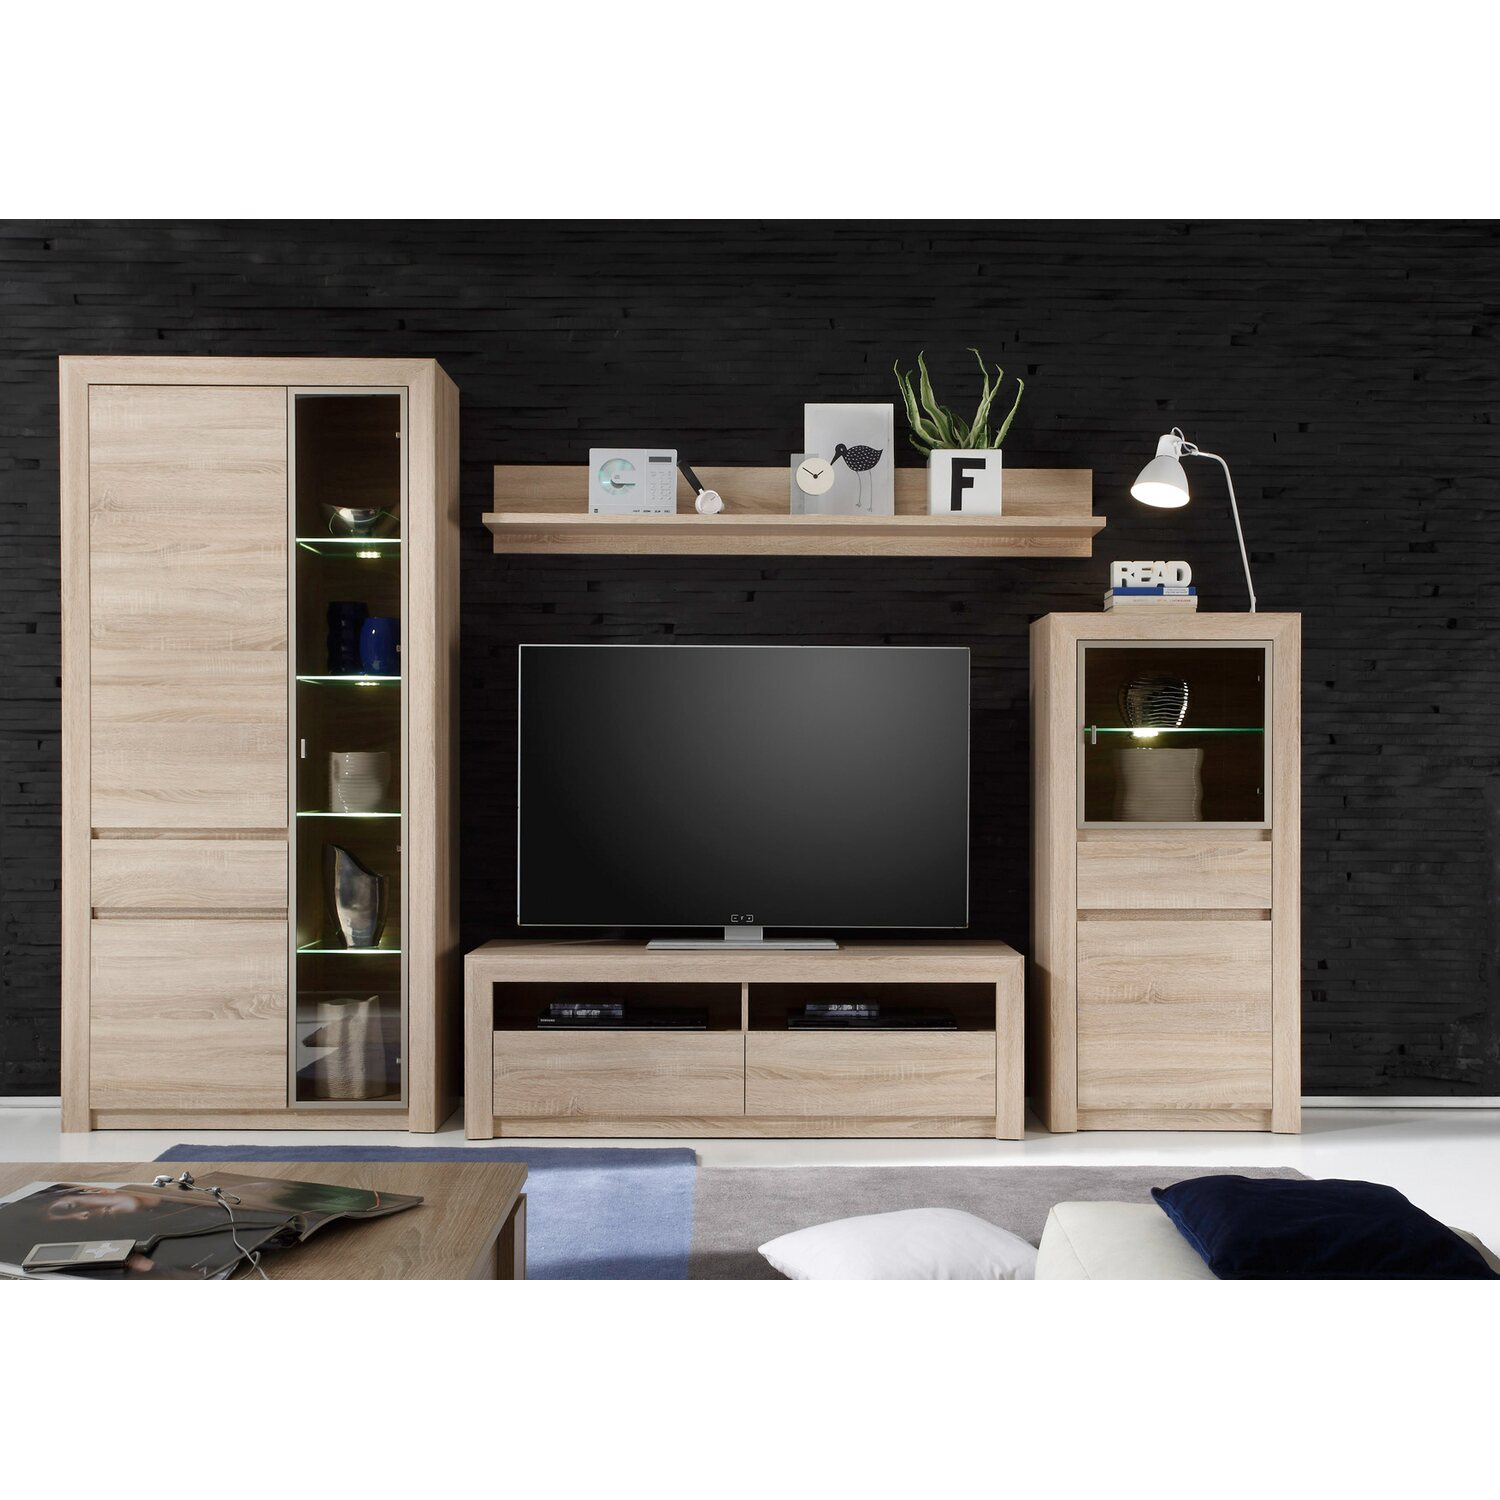 tv lowboard sevilla 140 cm x 46 cm x 48 cm eiche sonoma hell kaufen bei obi. Black Bedroom Furniture Sets. Home Design Ideas